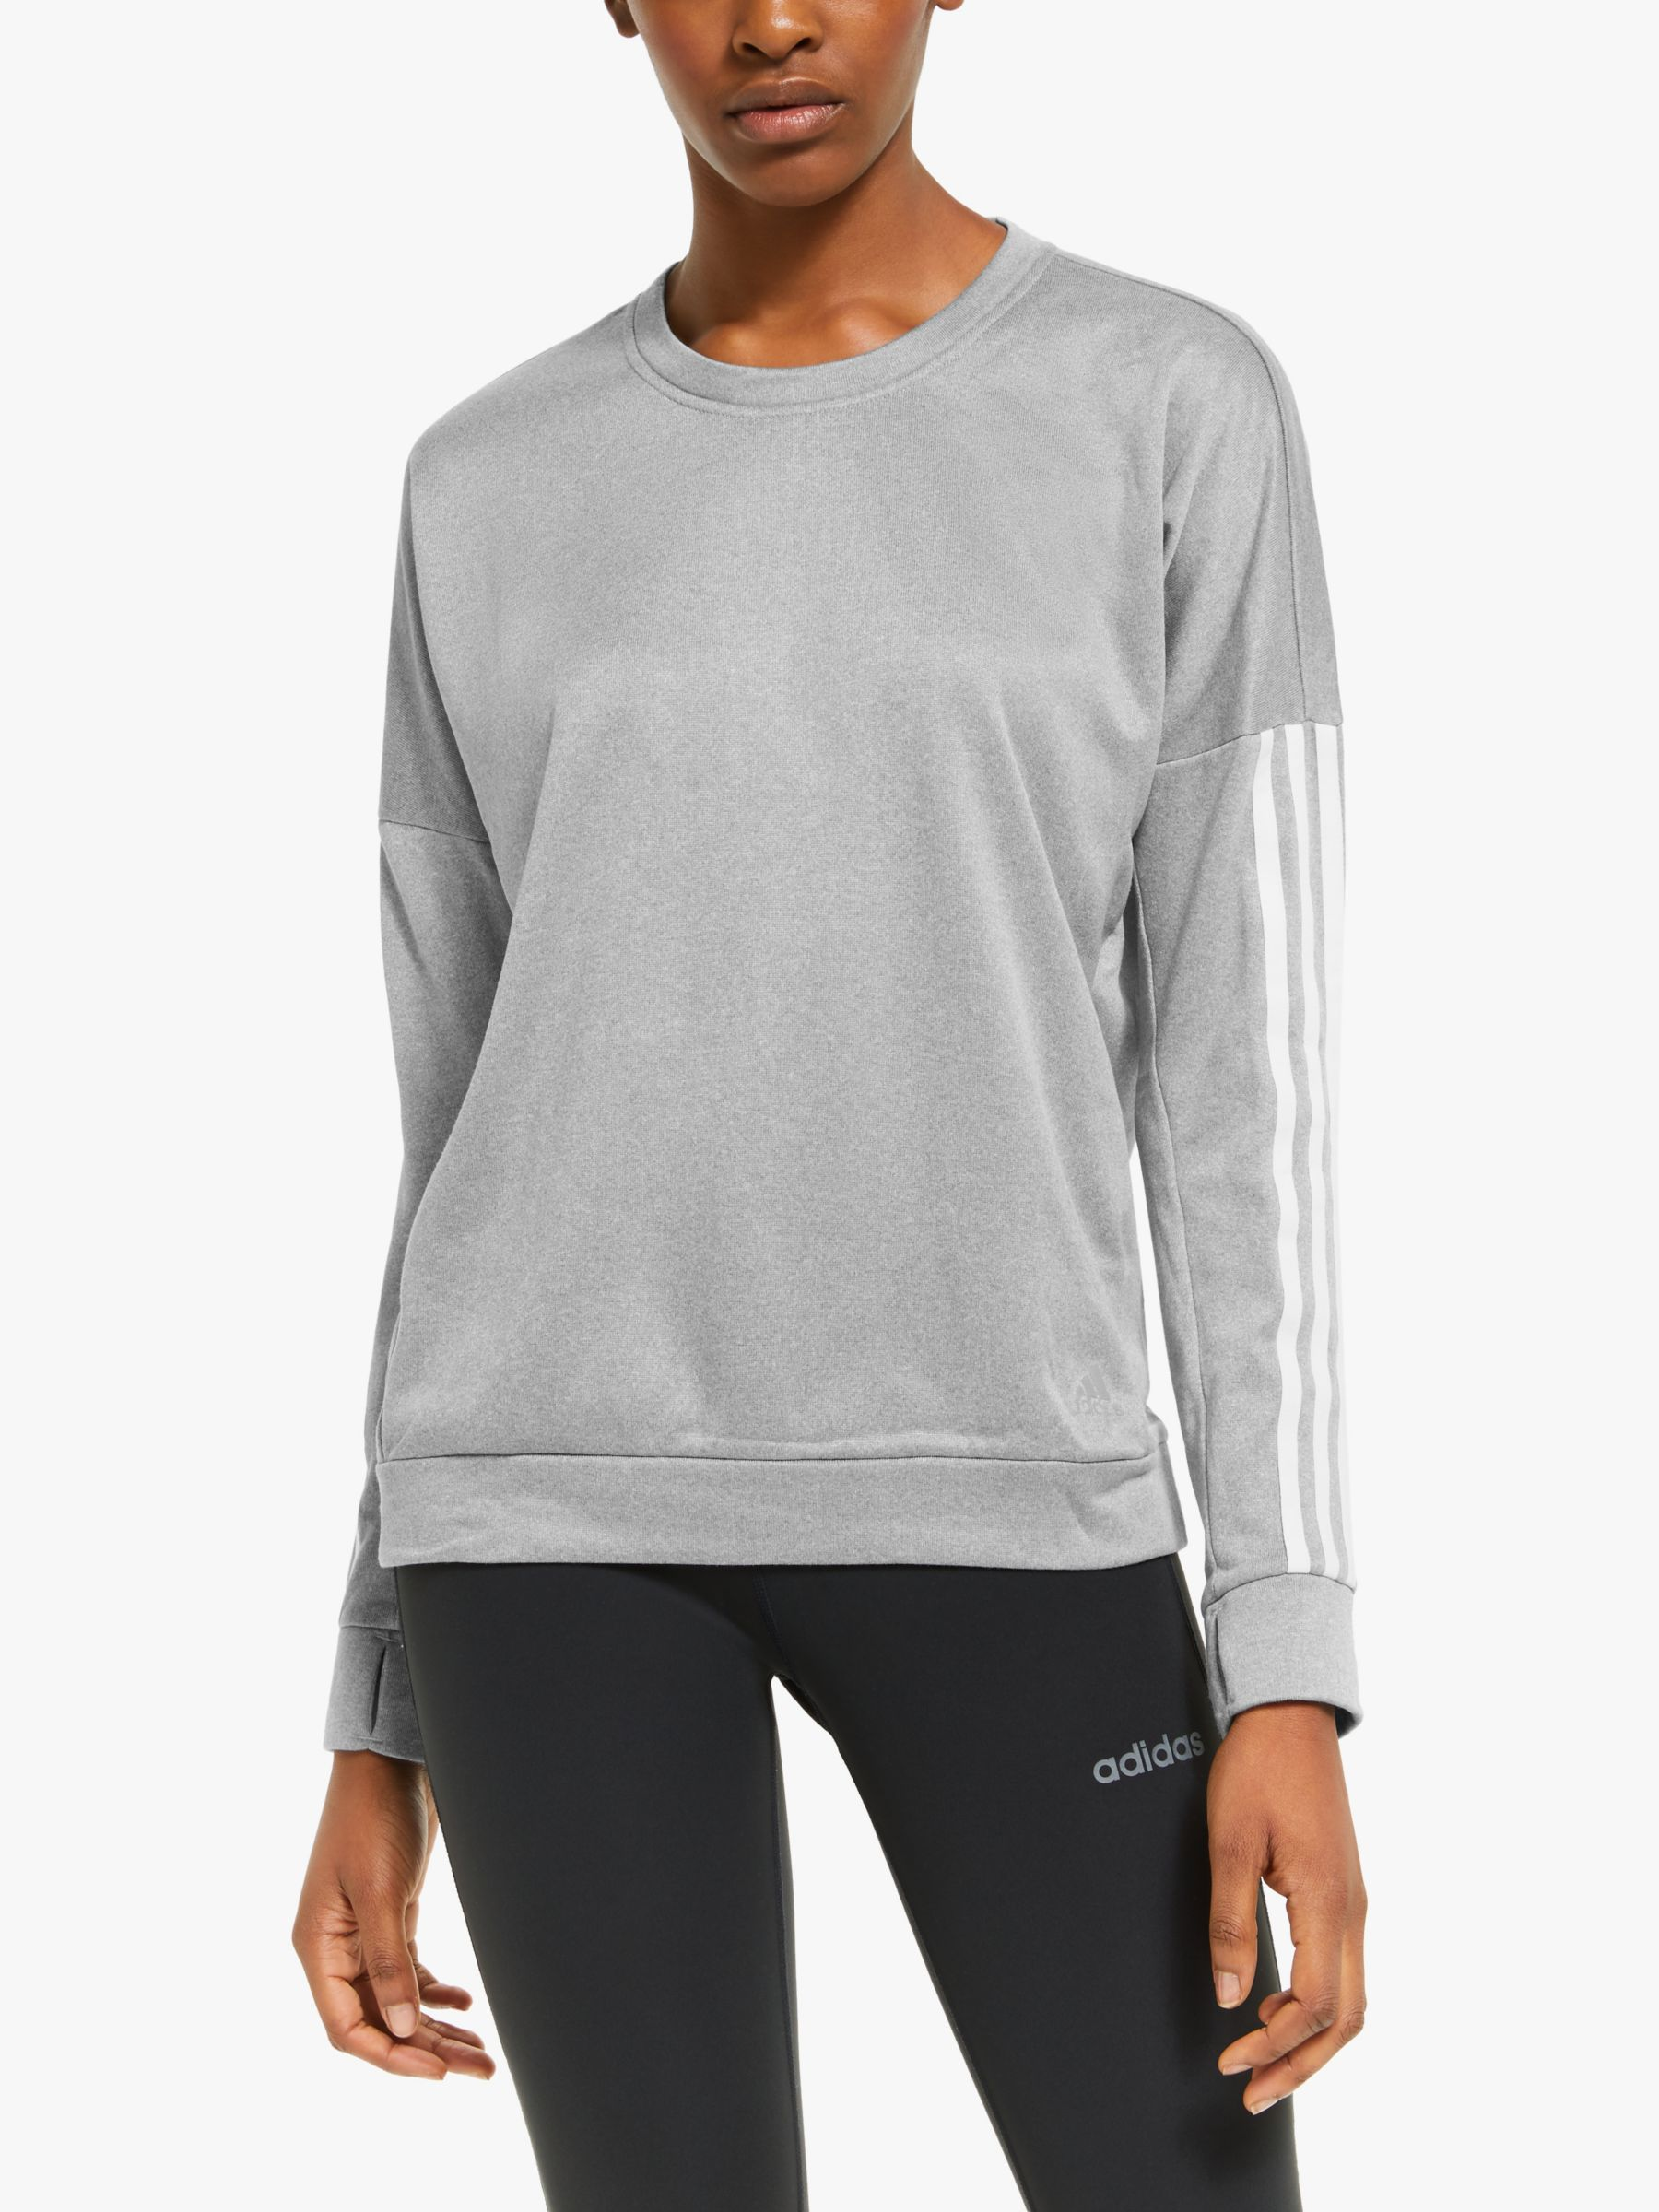 Adidas adidas Response Long Sleeve Running Sweatshirt, Medium Grey